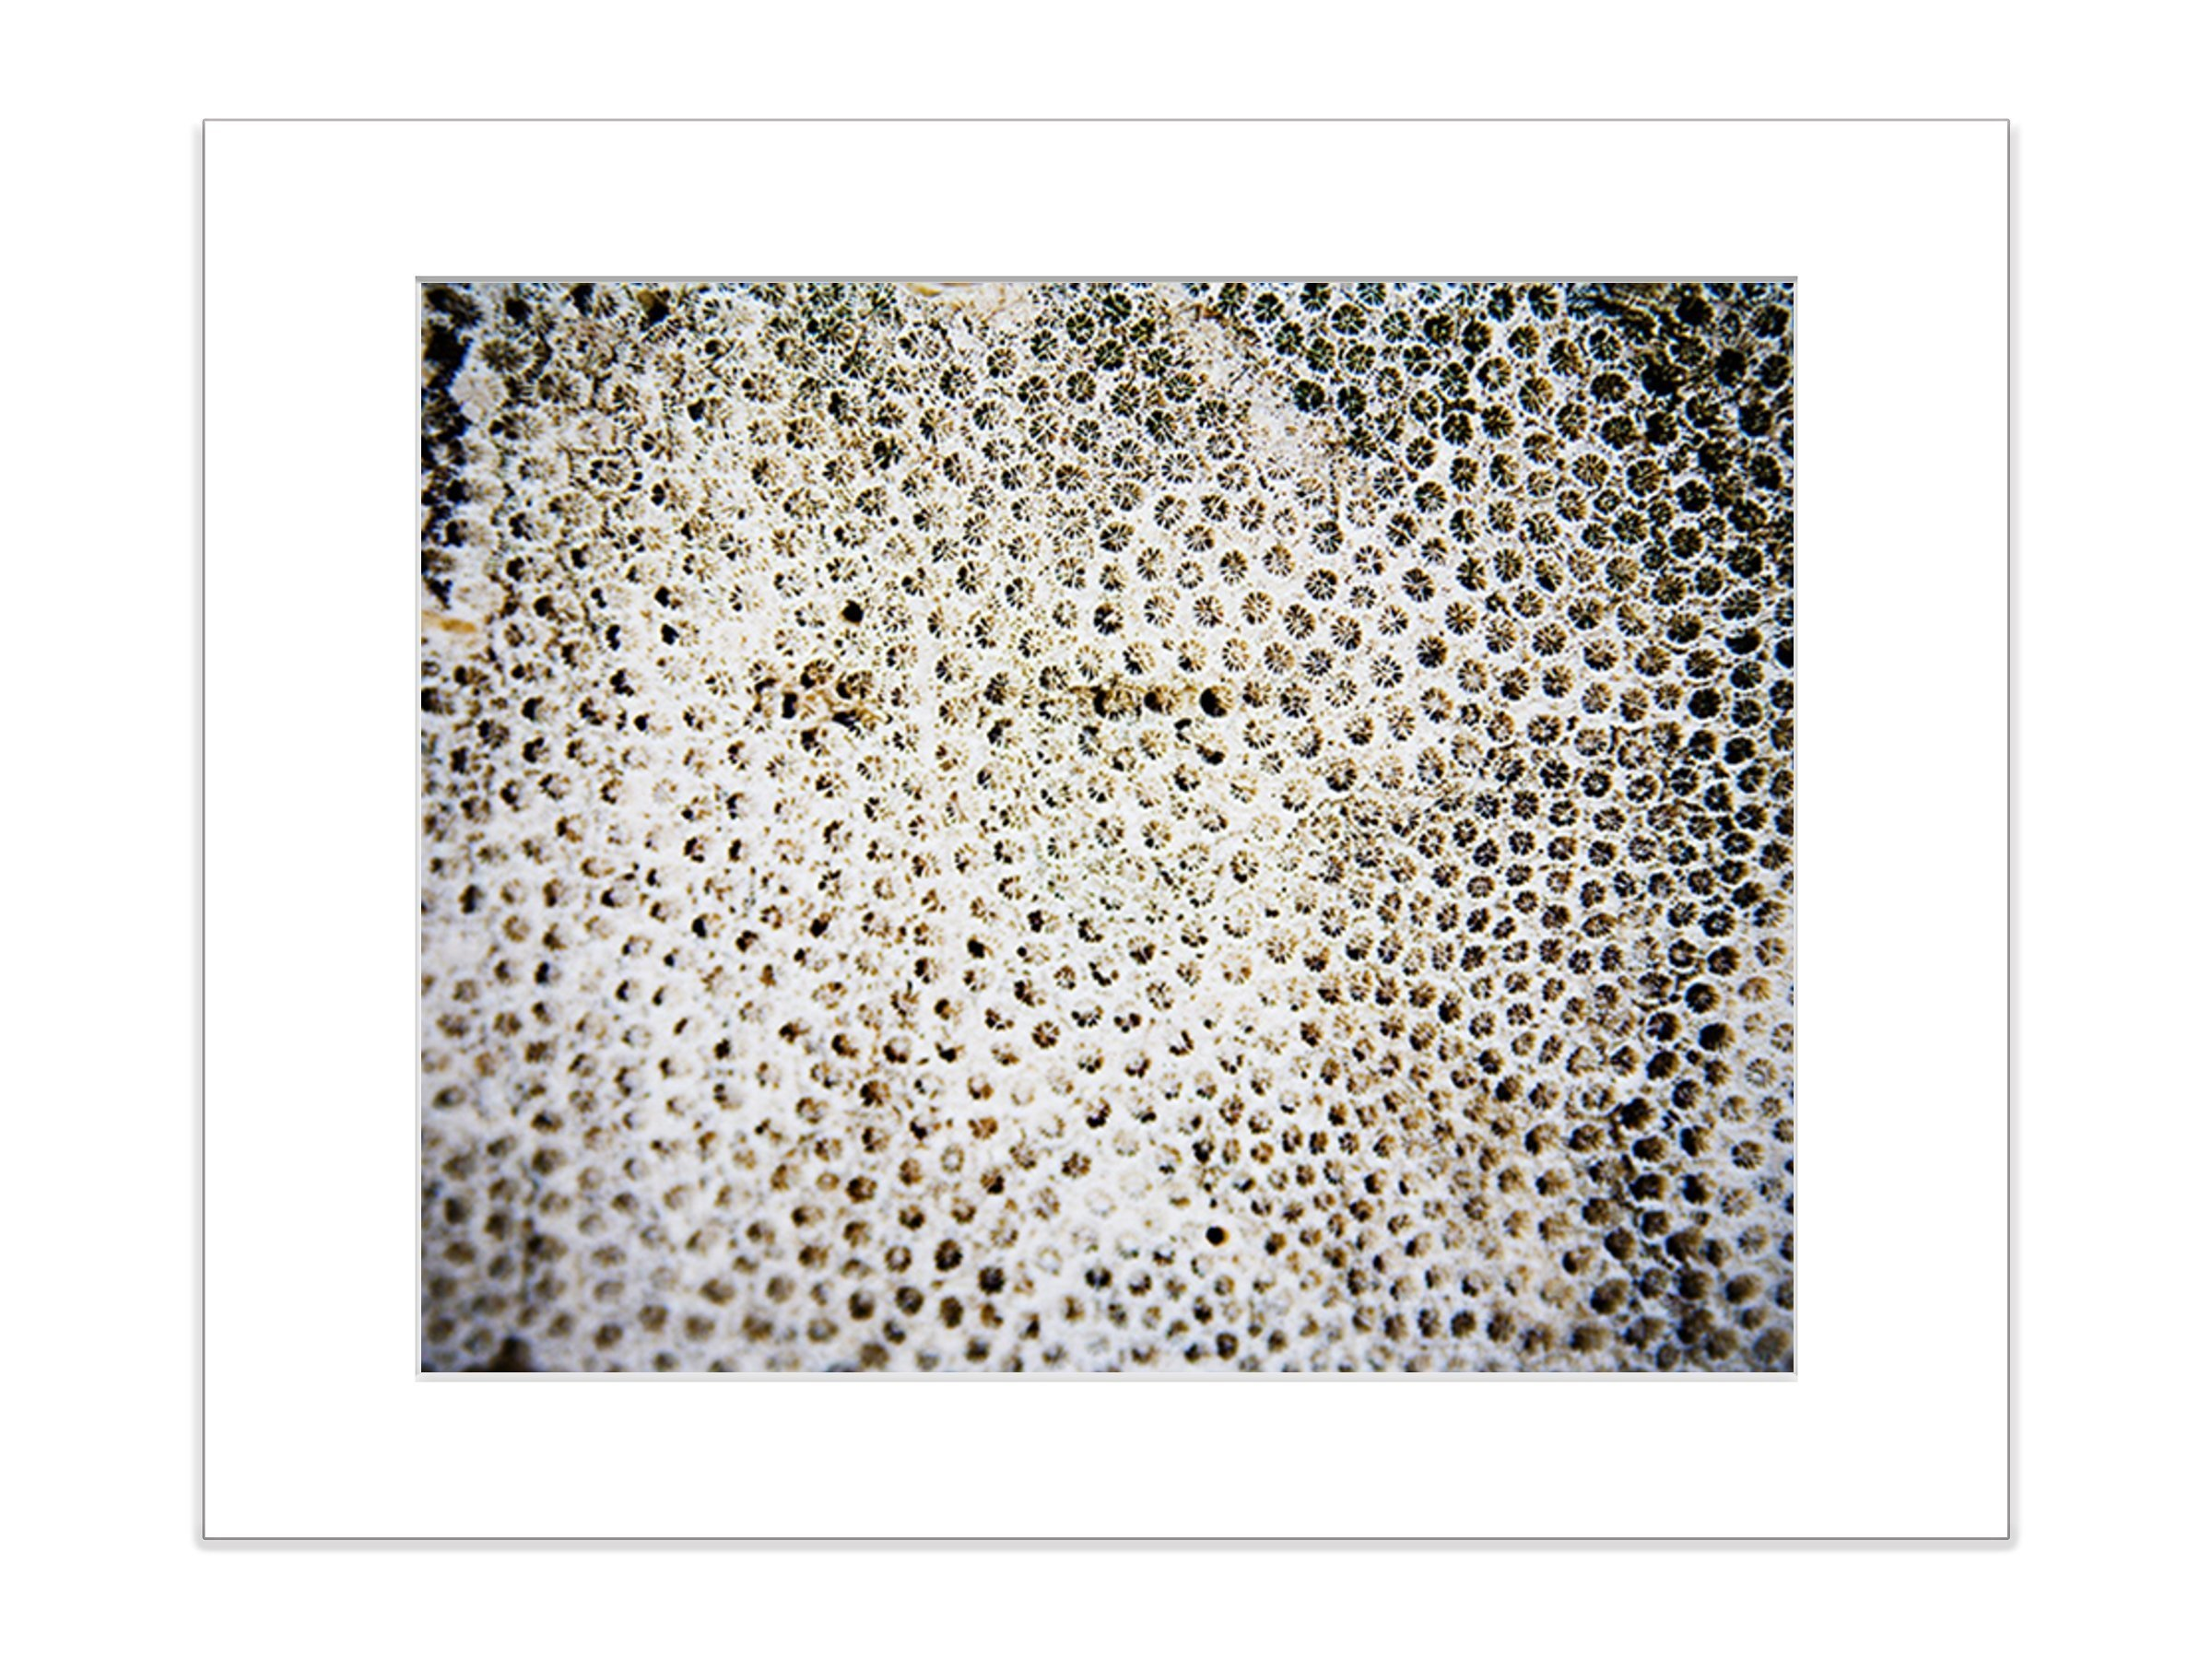 Abstract Coral Reef Marine Life Underwater Beach 5x7 Inch Matted Photograph